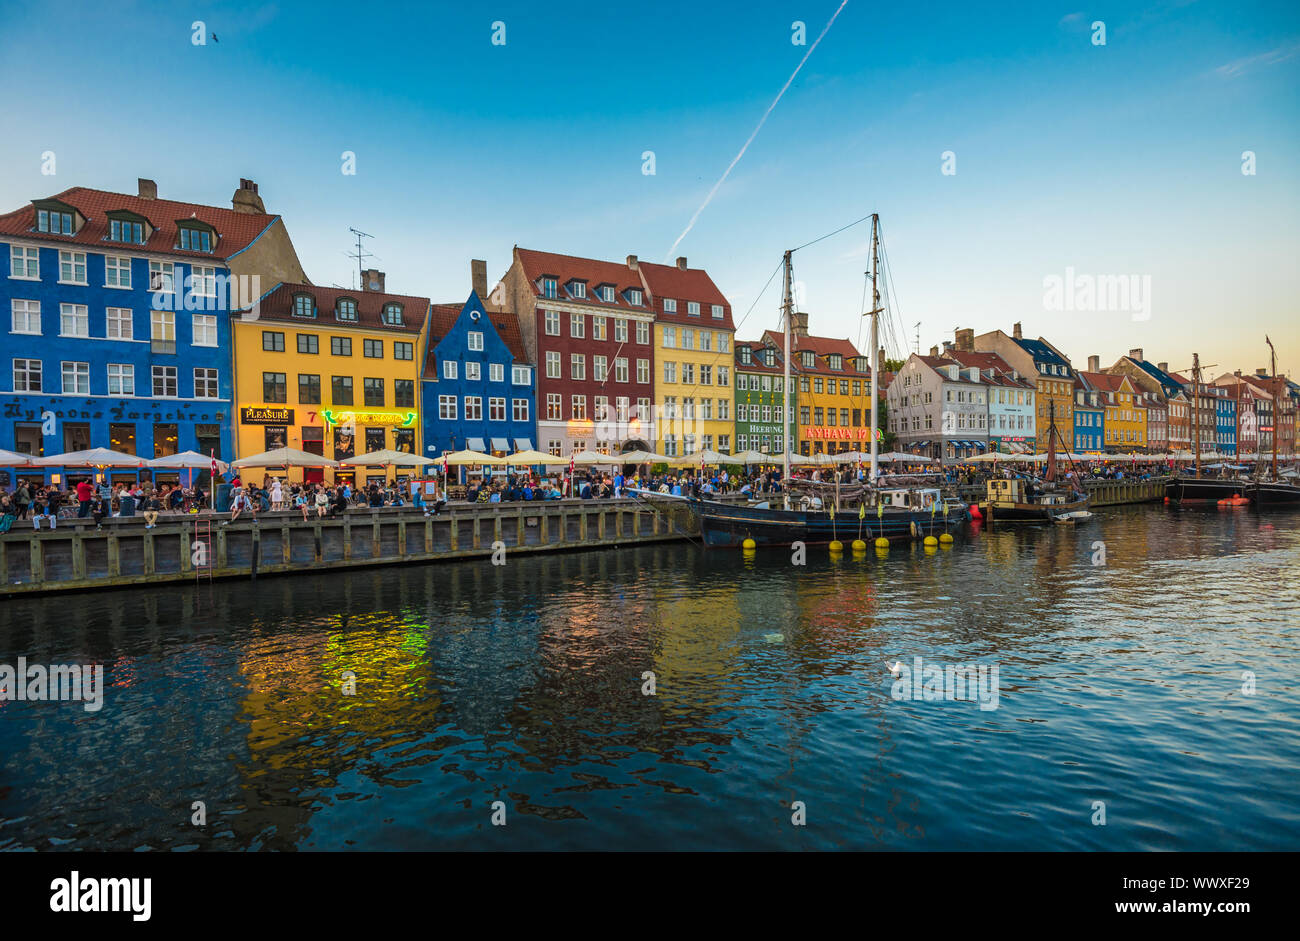 Nyhavn district is one of the most famous landmarks in Copenhagen, Denmark Stock Photo